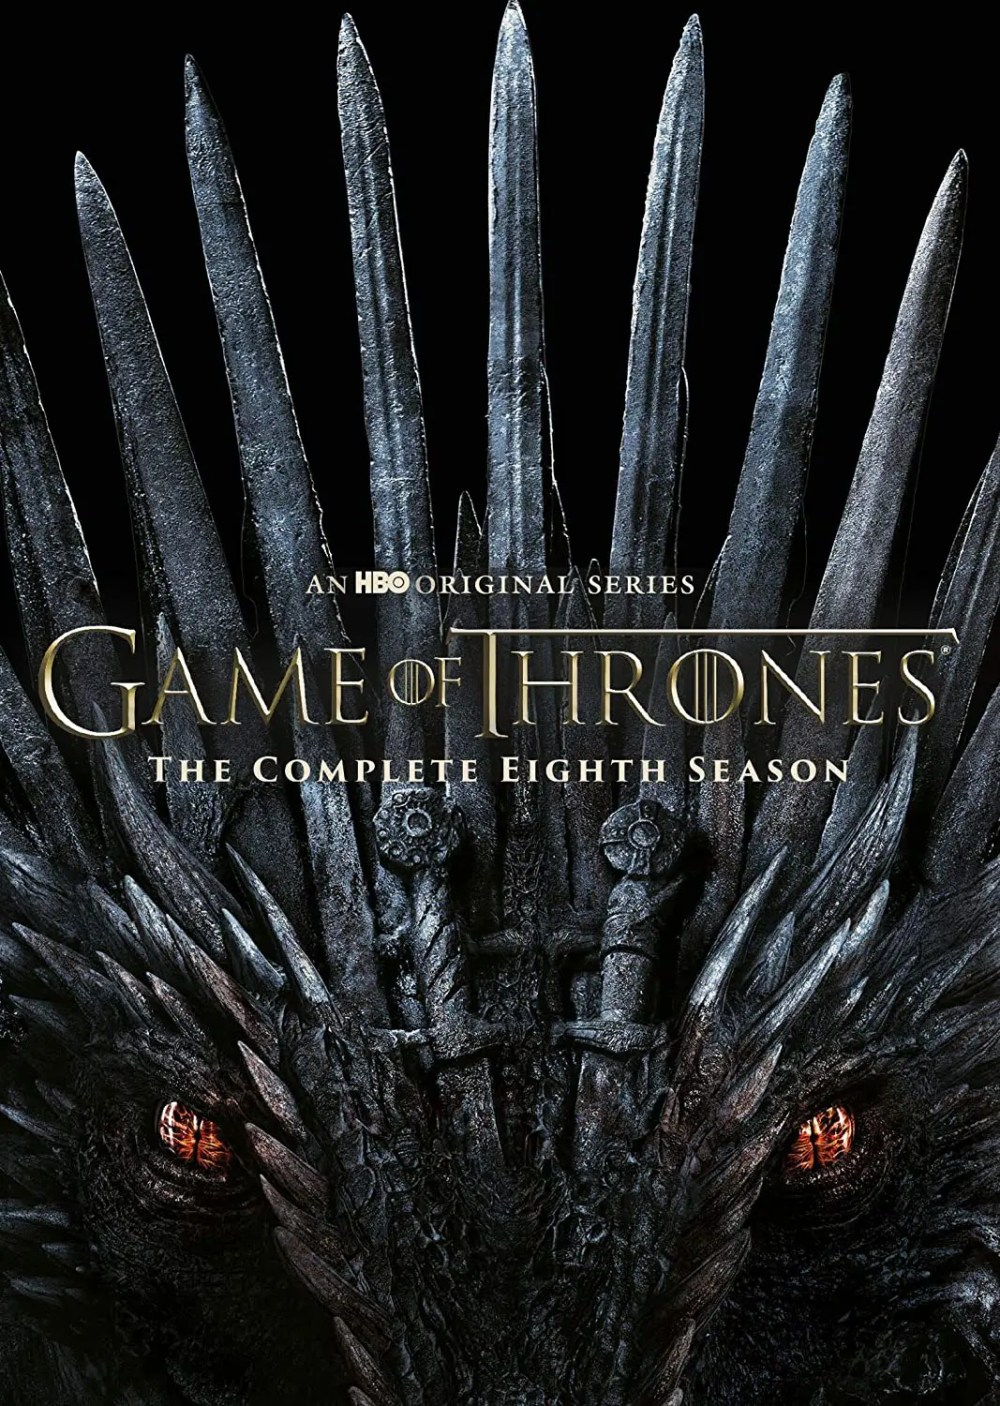 Game of Thrones: The Complete 8th Season DVD Box Set